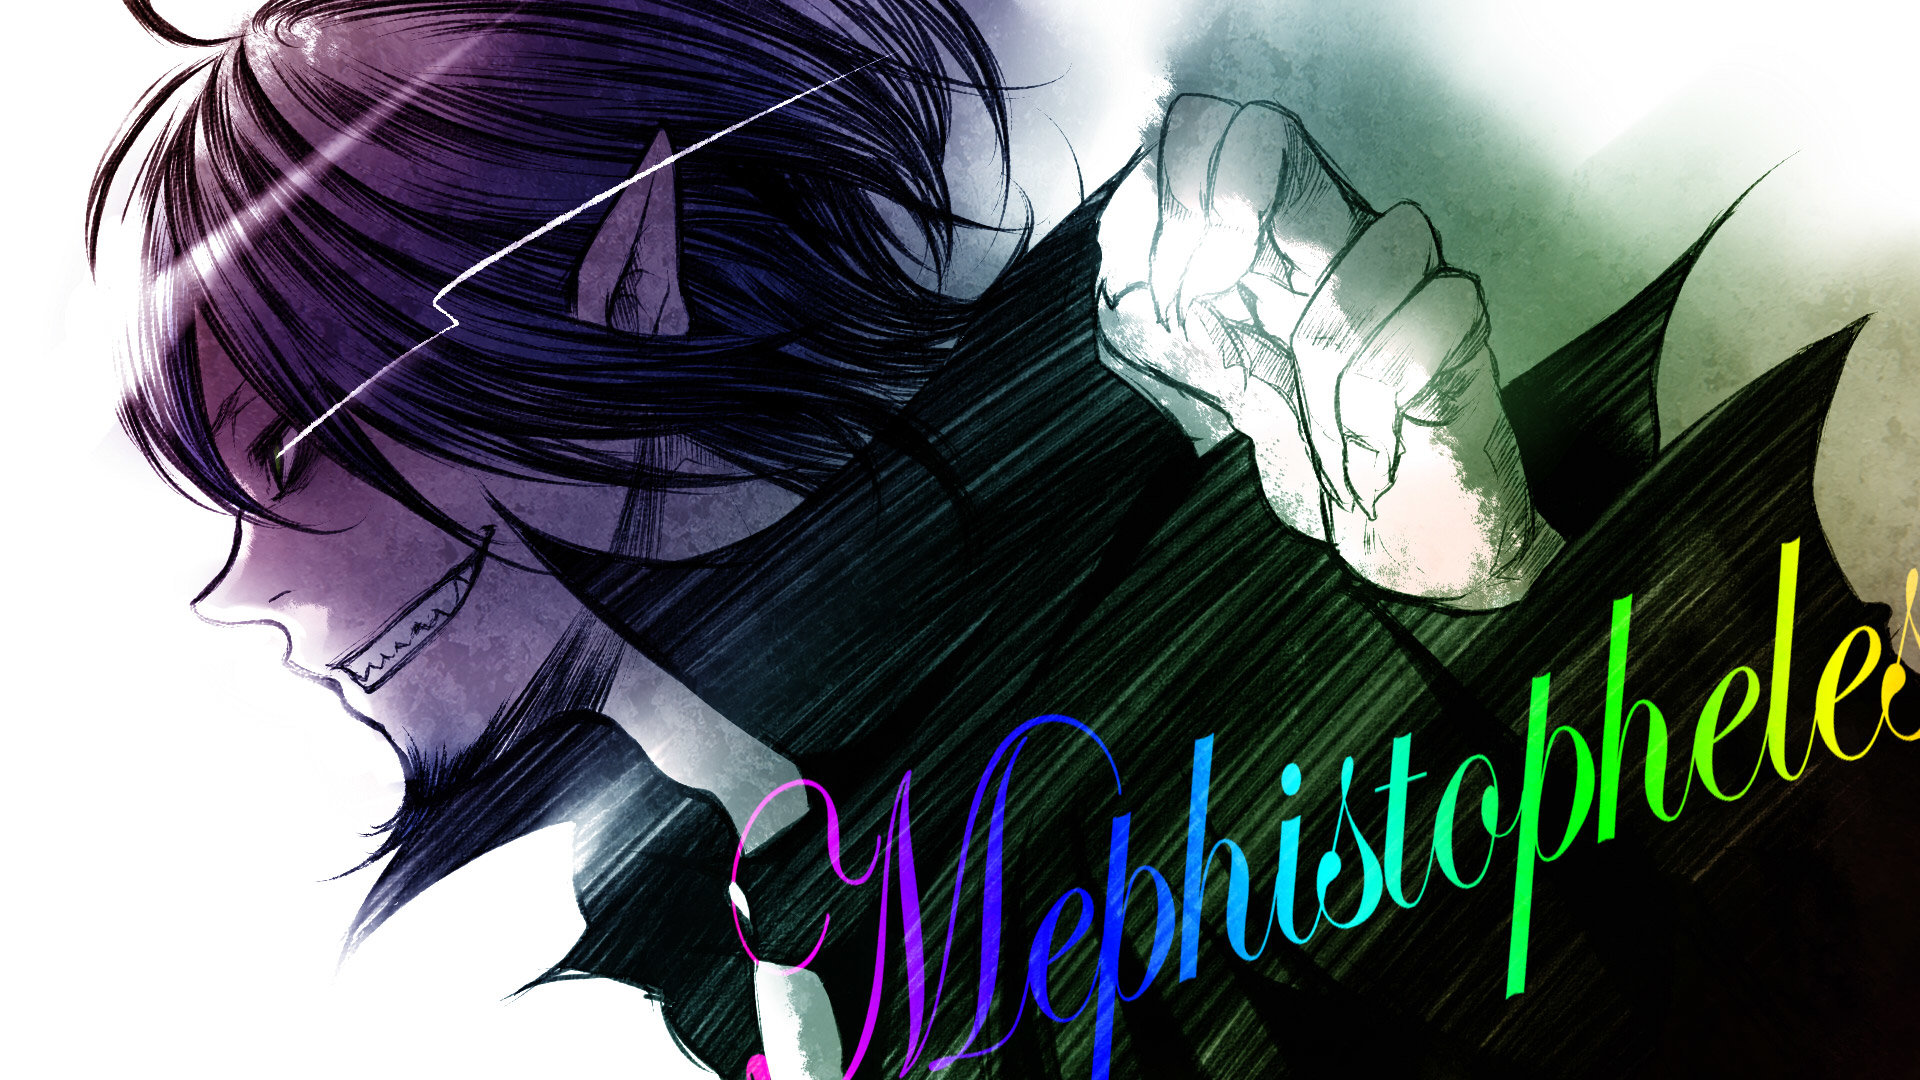 Download hd 1920x1080 Mephisto Pheles PC wallpaper ID:242323 for free